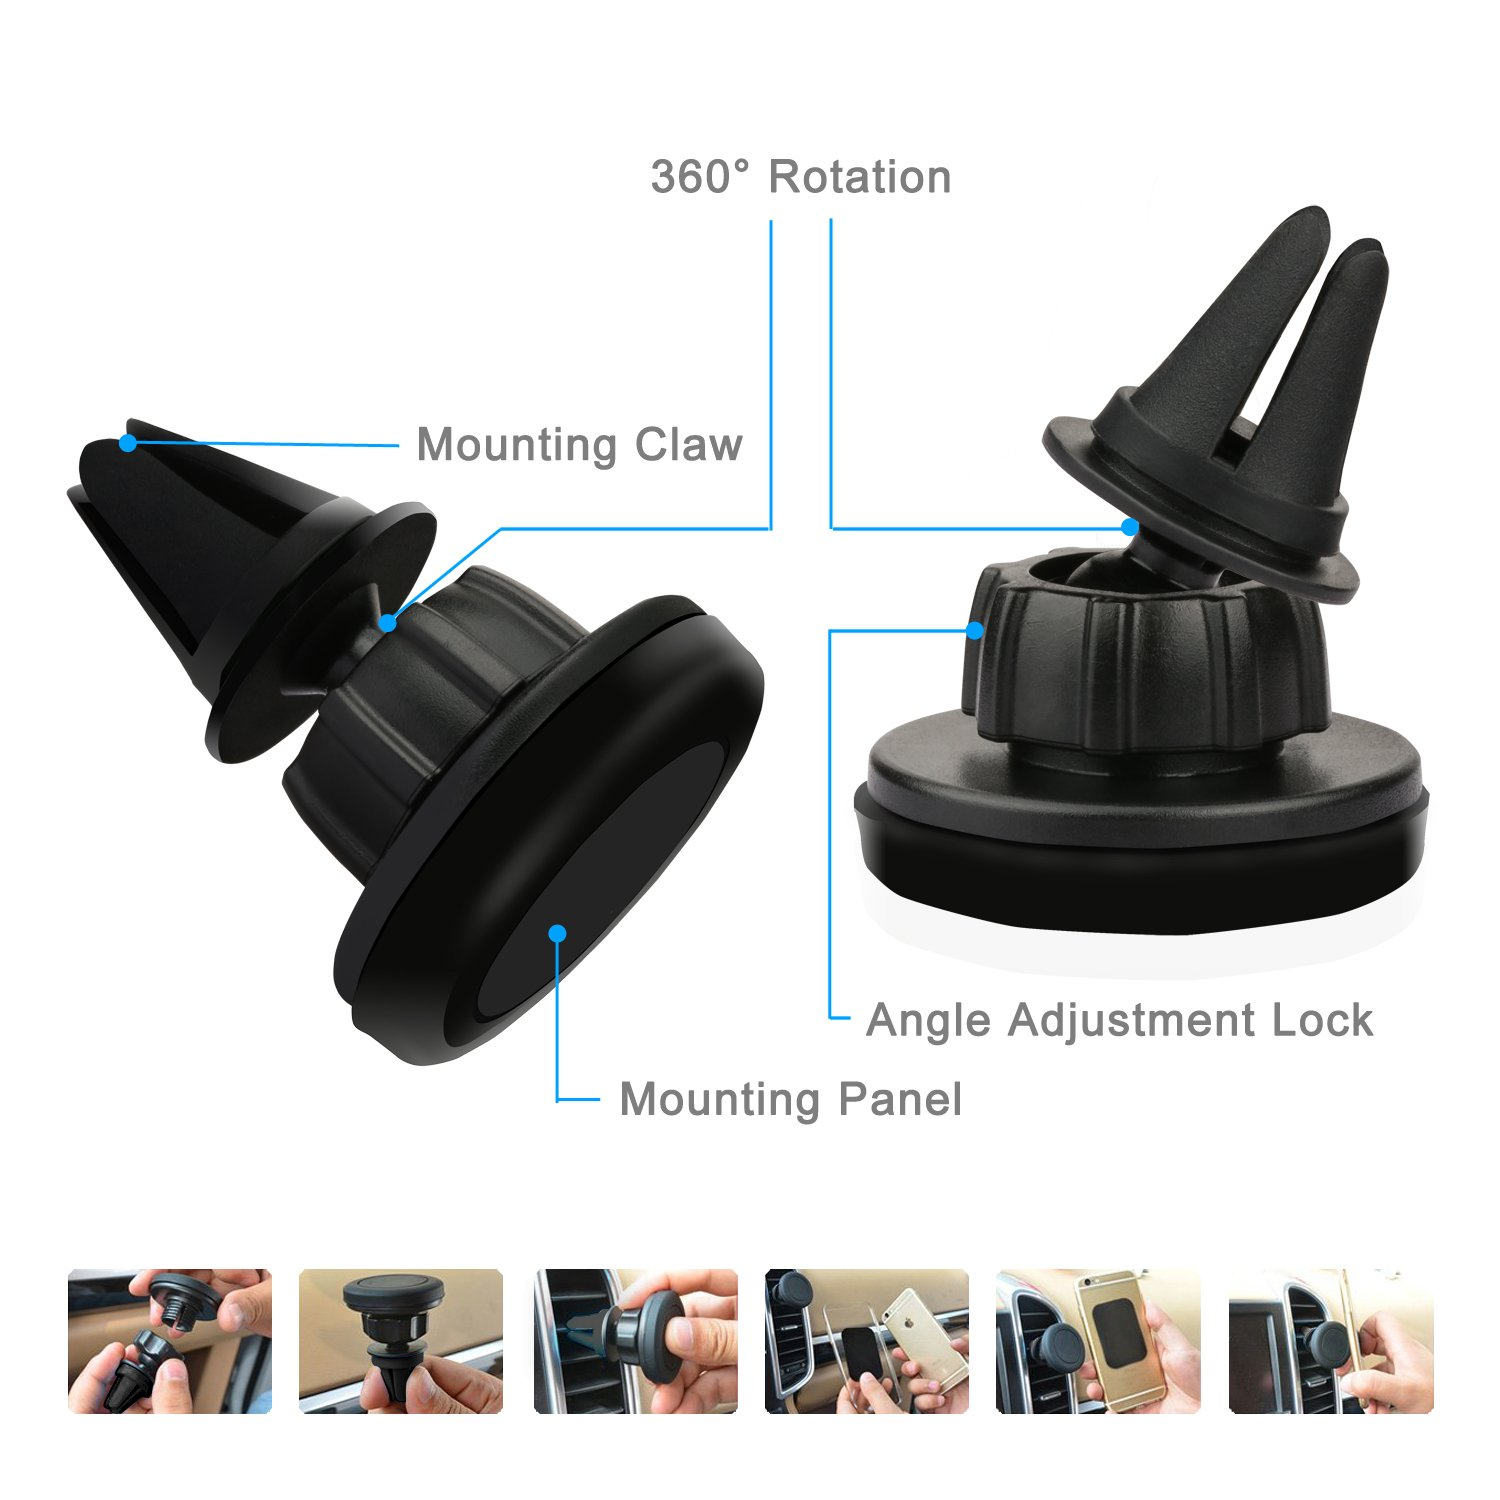 Amazoncom Etekcity 360 Degree Magnetic Air Vent Universal Car Mount Ventilation Holder T360 With Smart Snap Technology Black Cell Phones Accessories